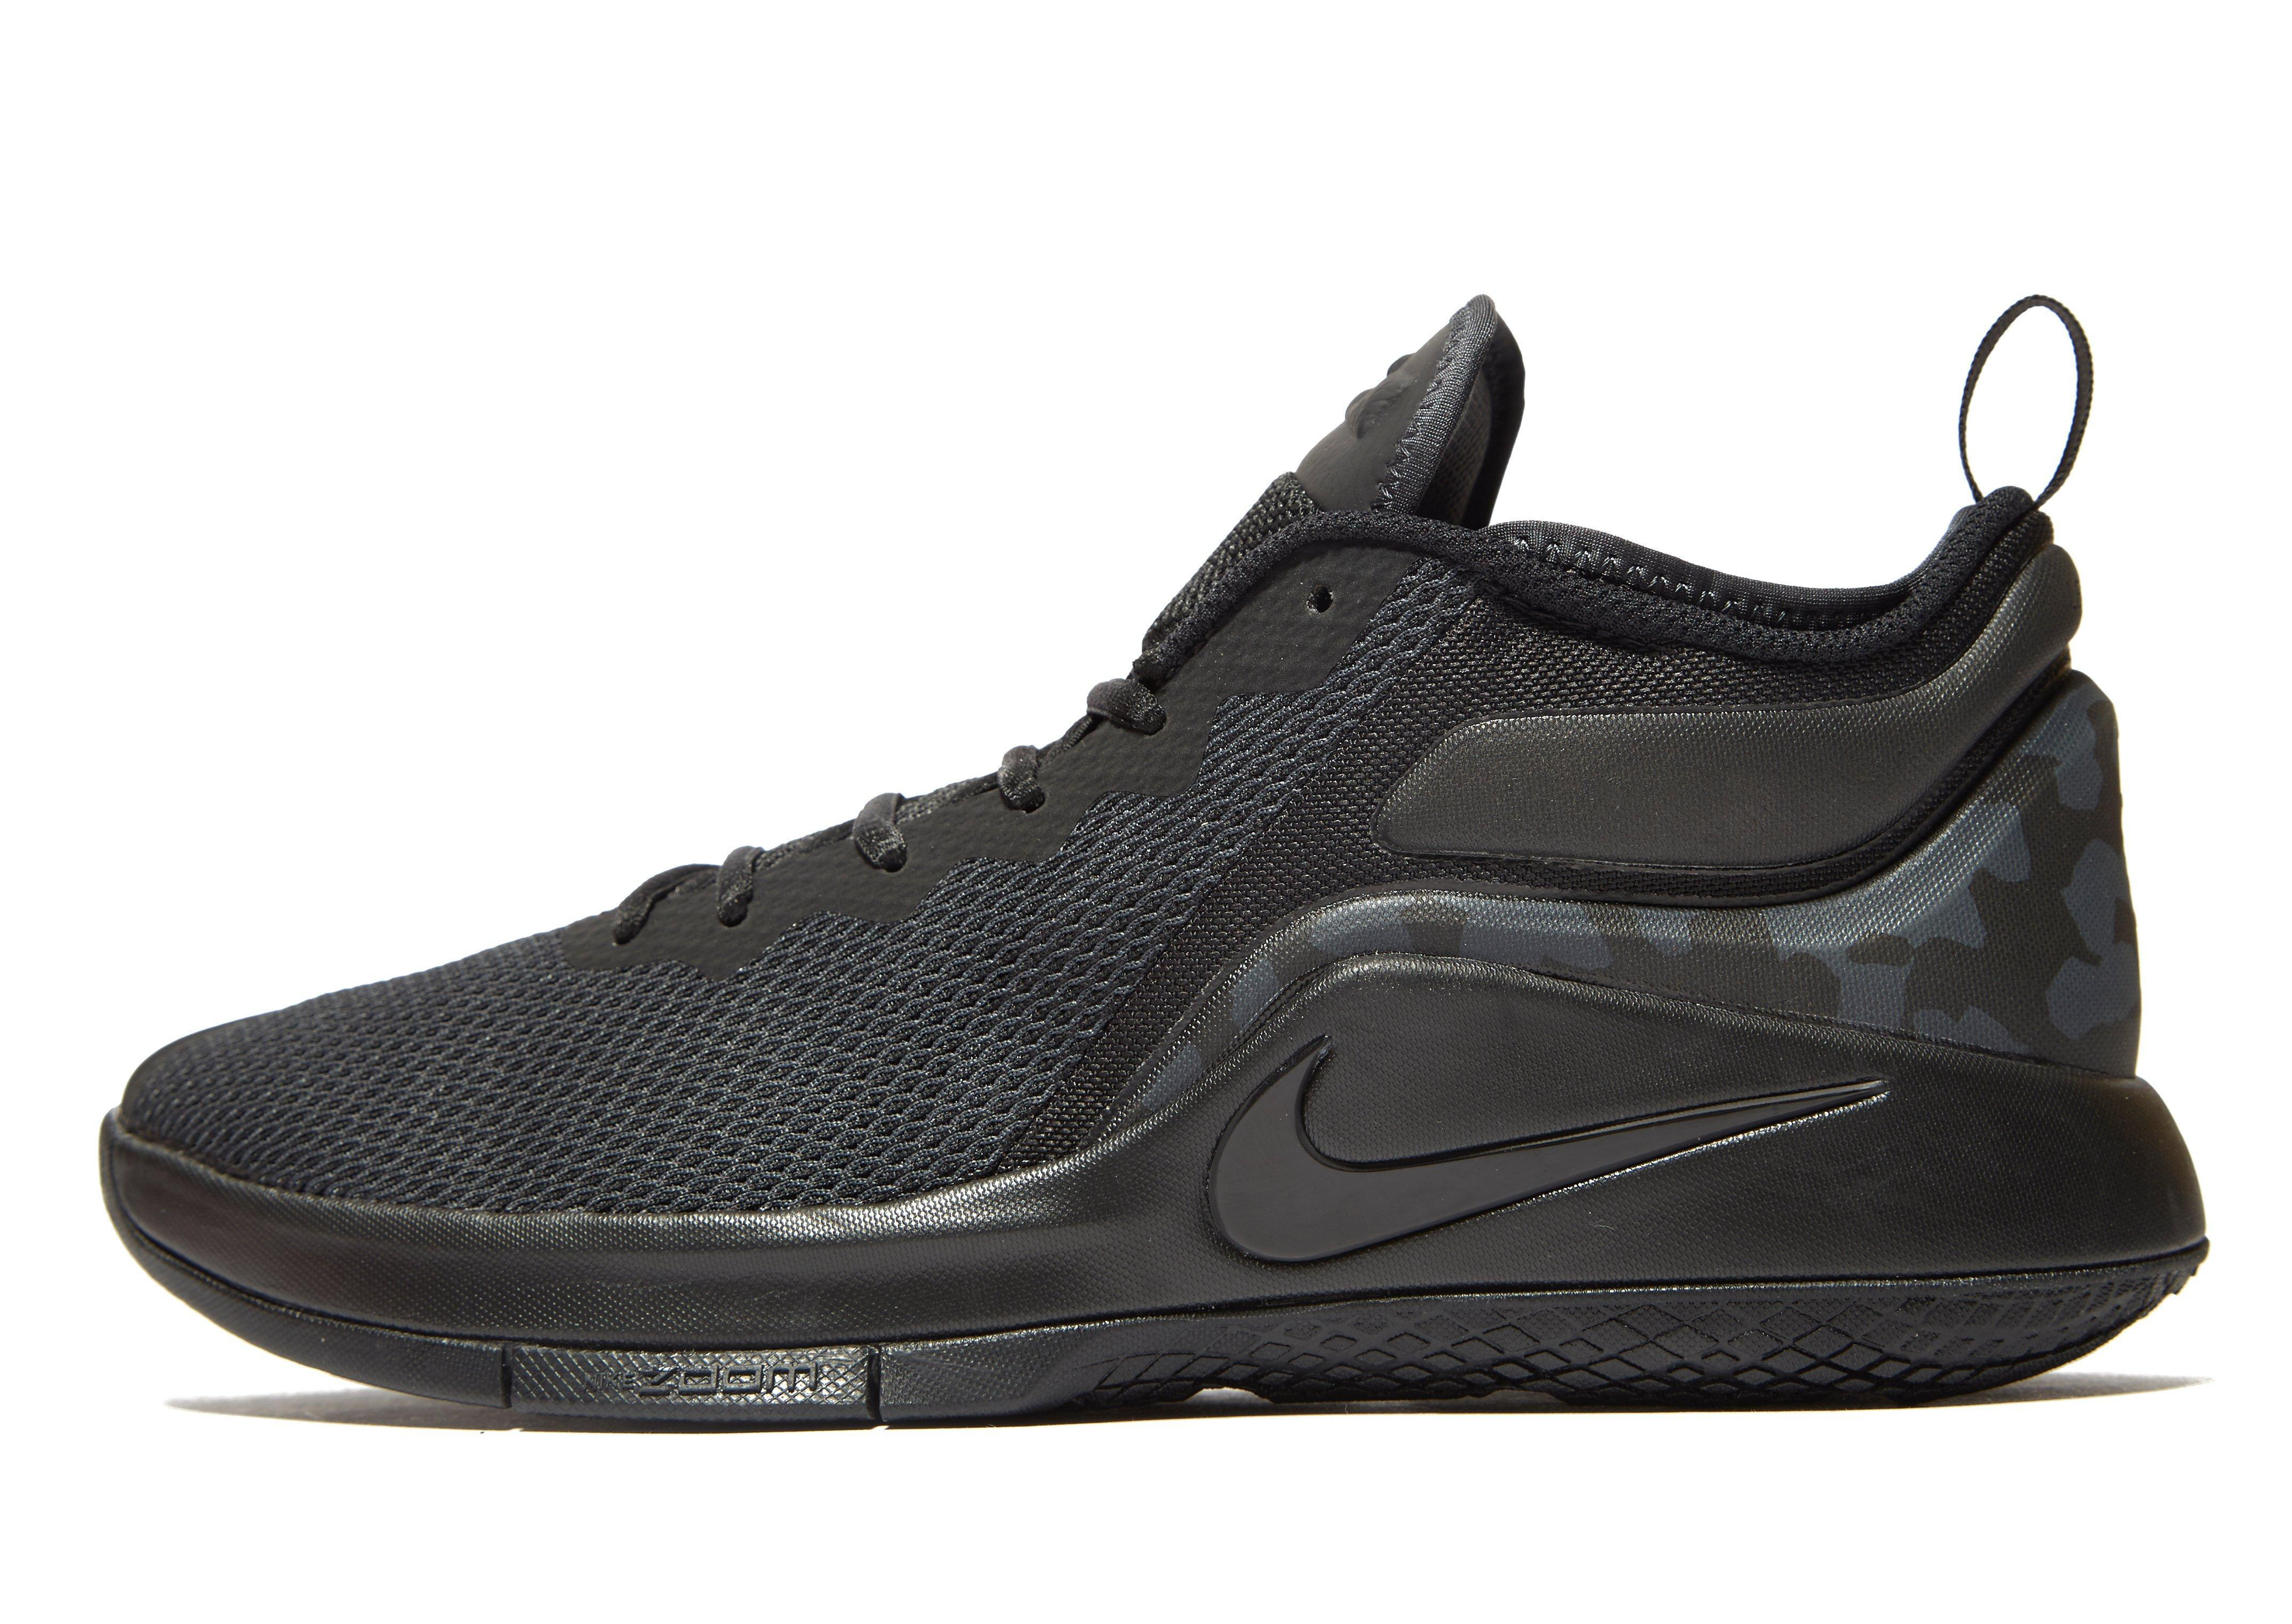 official photos 70240 499c0 Nike Rubber Lebron Witness 2 in Black for Men - Lyst